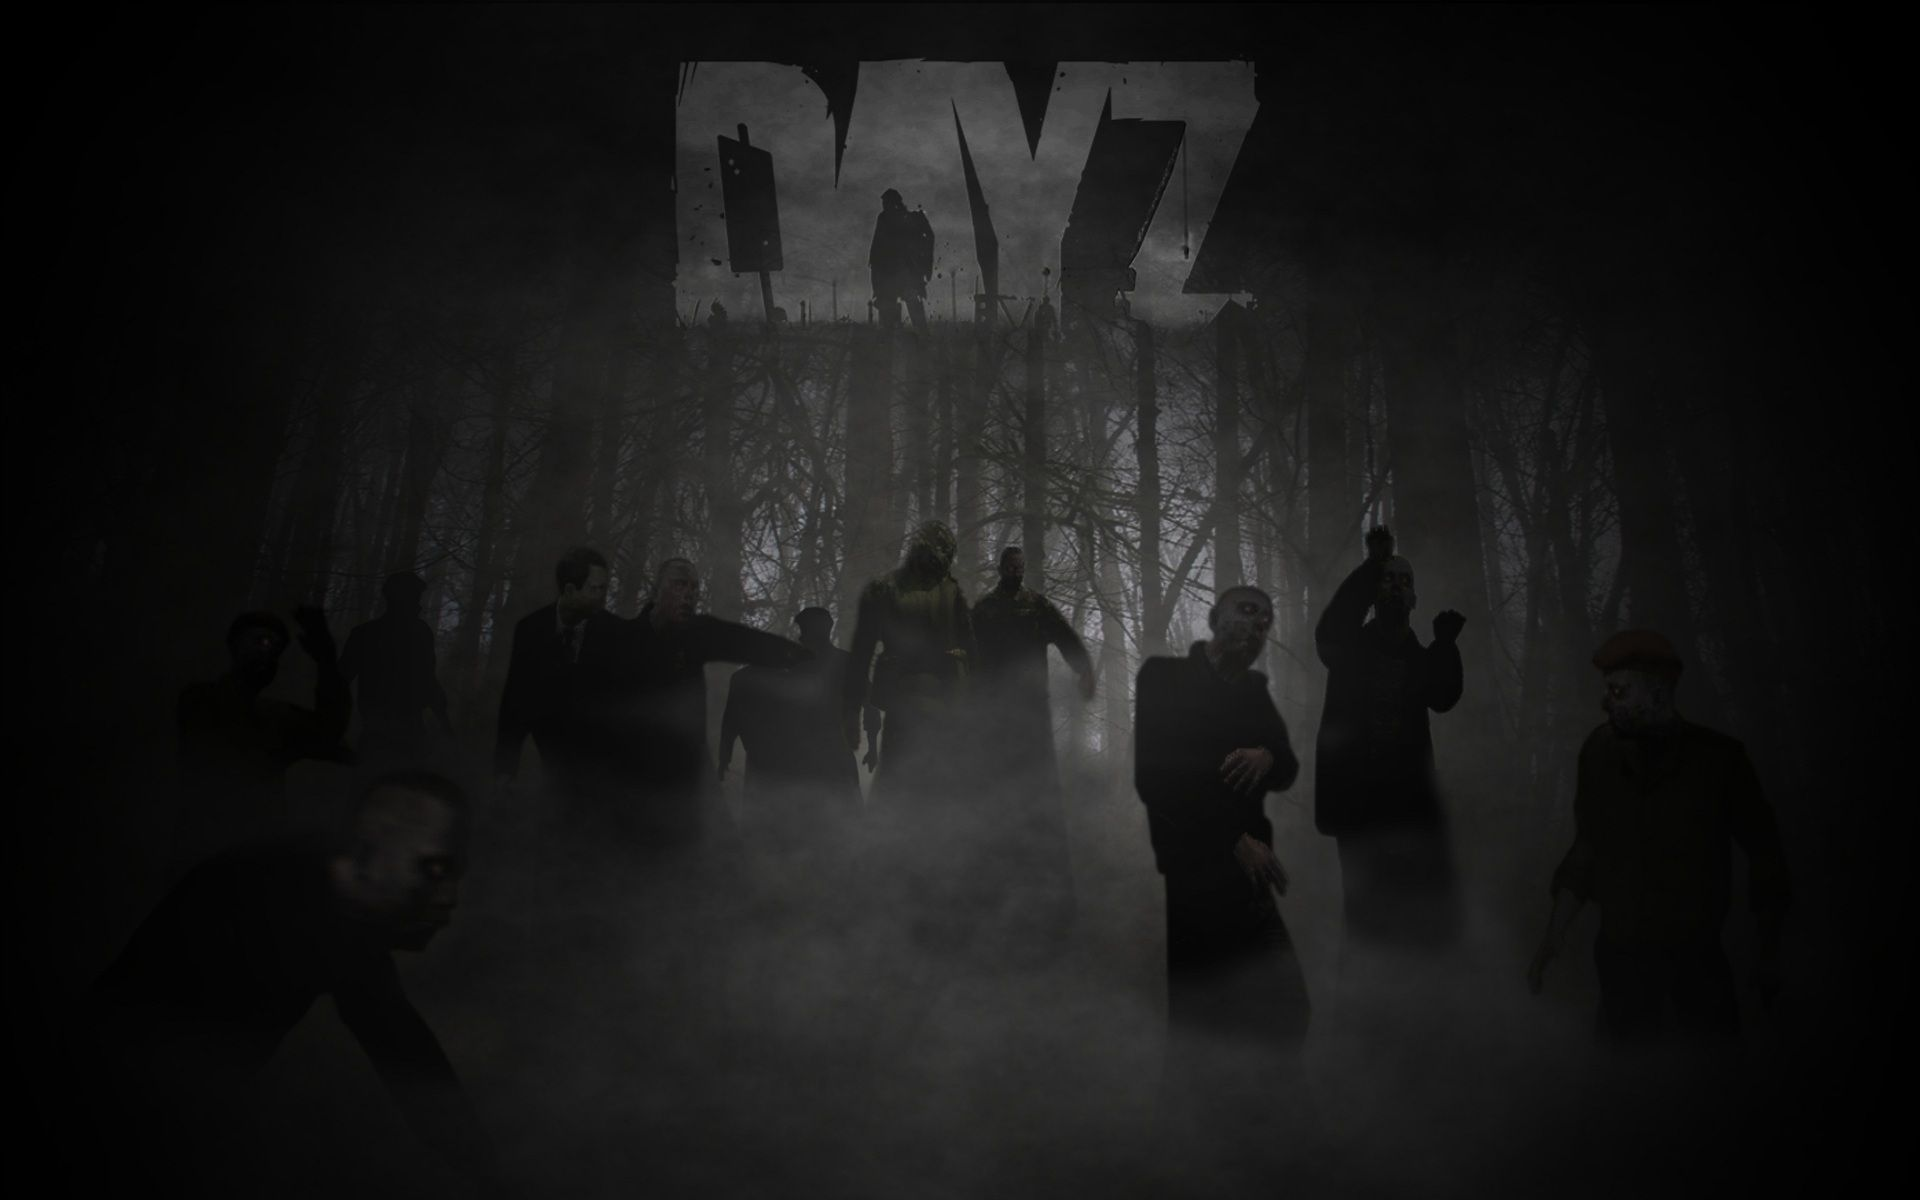 dayz poster wallpapers